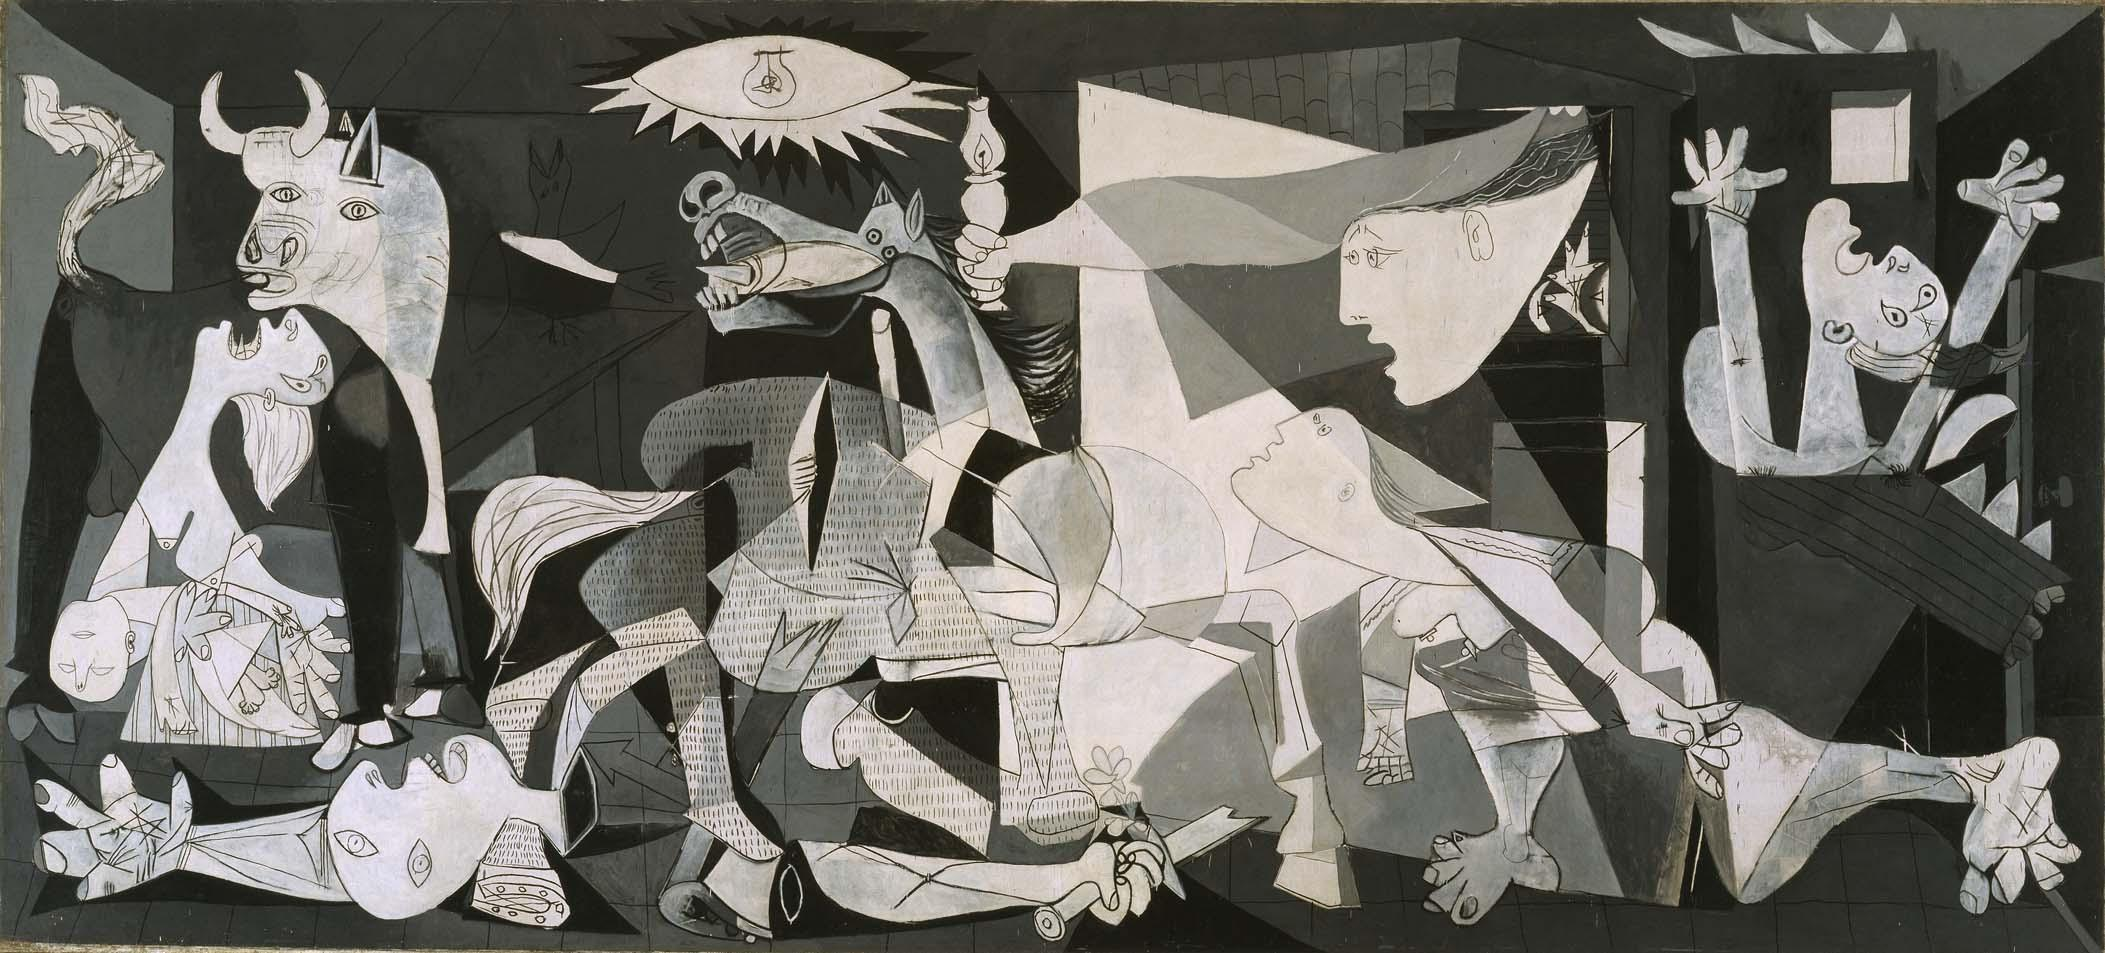 Guernica, by Pablo Picasso, 1937. Painted in response to the Nazi bombing of Guernica in 1937.